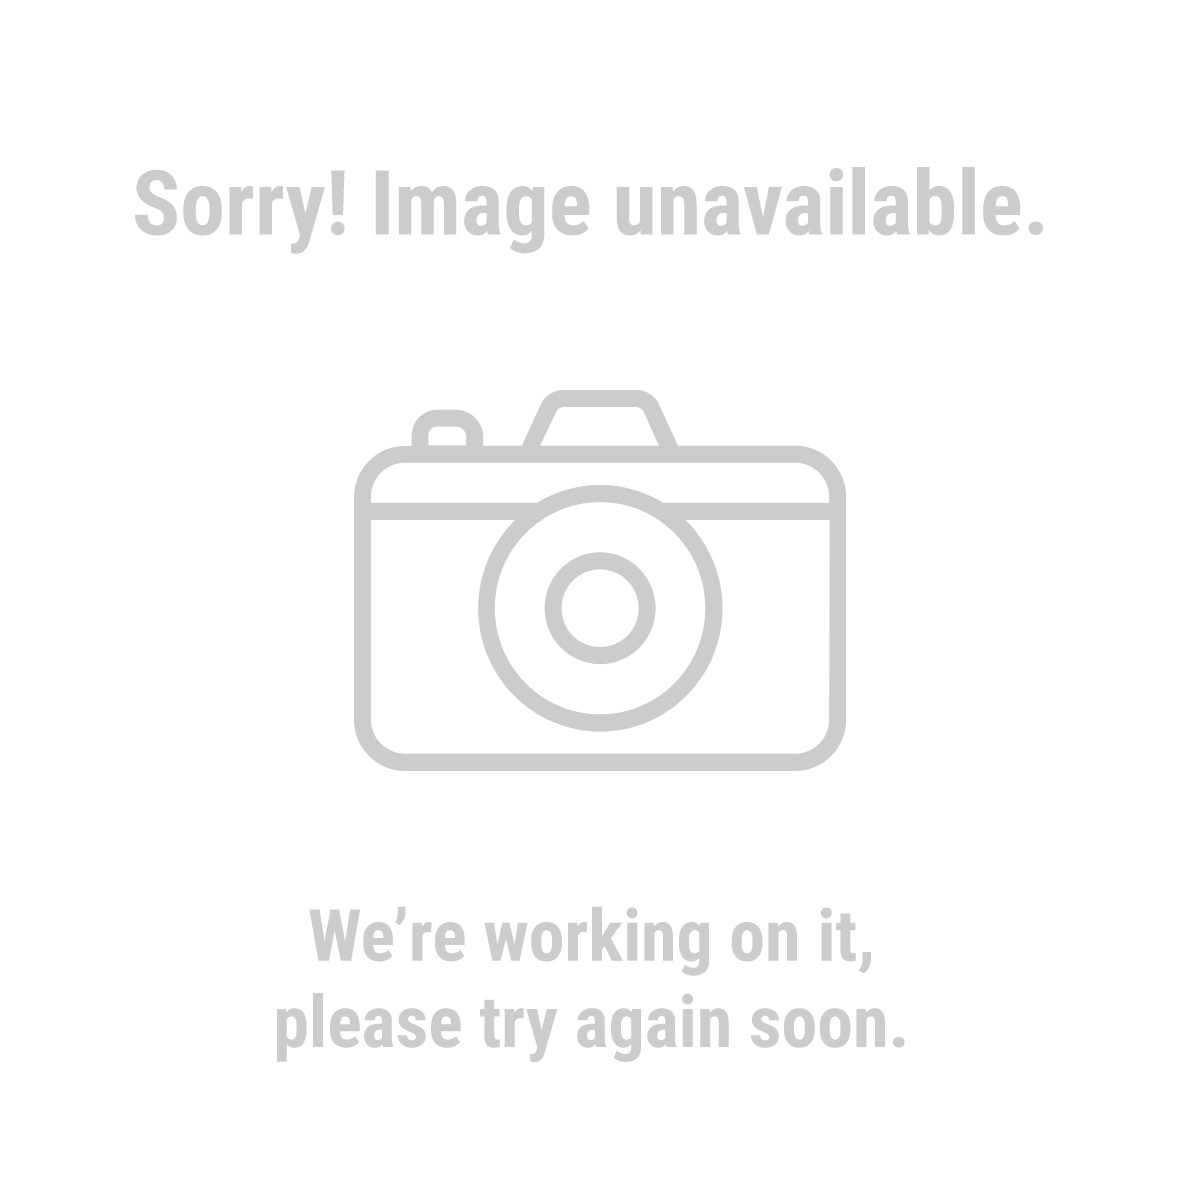 Bauer 63434 1-1/8 in. SDS Variable Speed Pro Rotary Hammer Kit